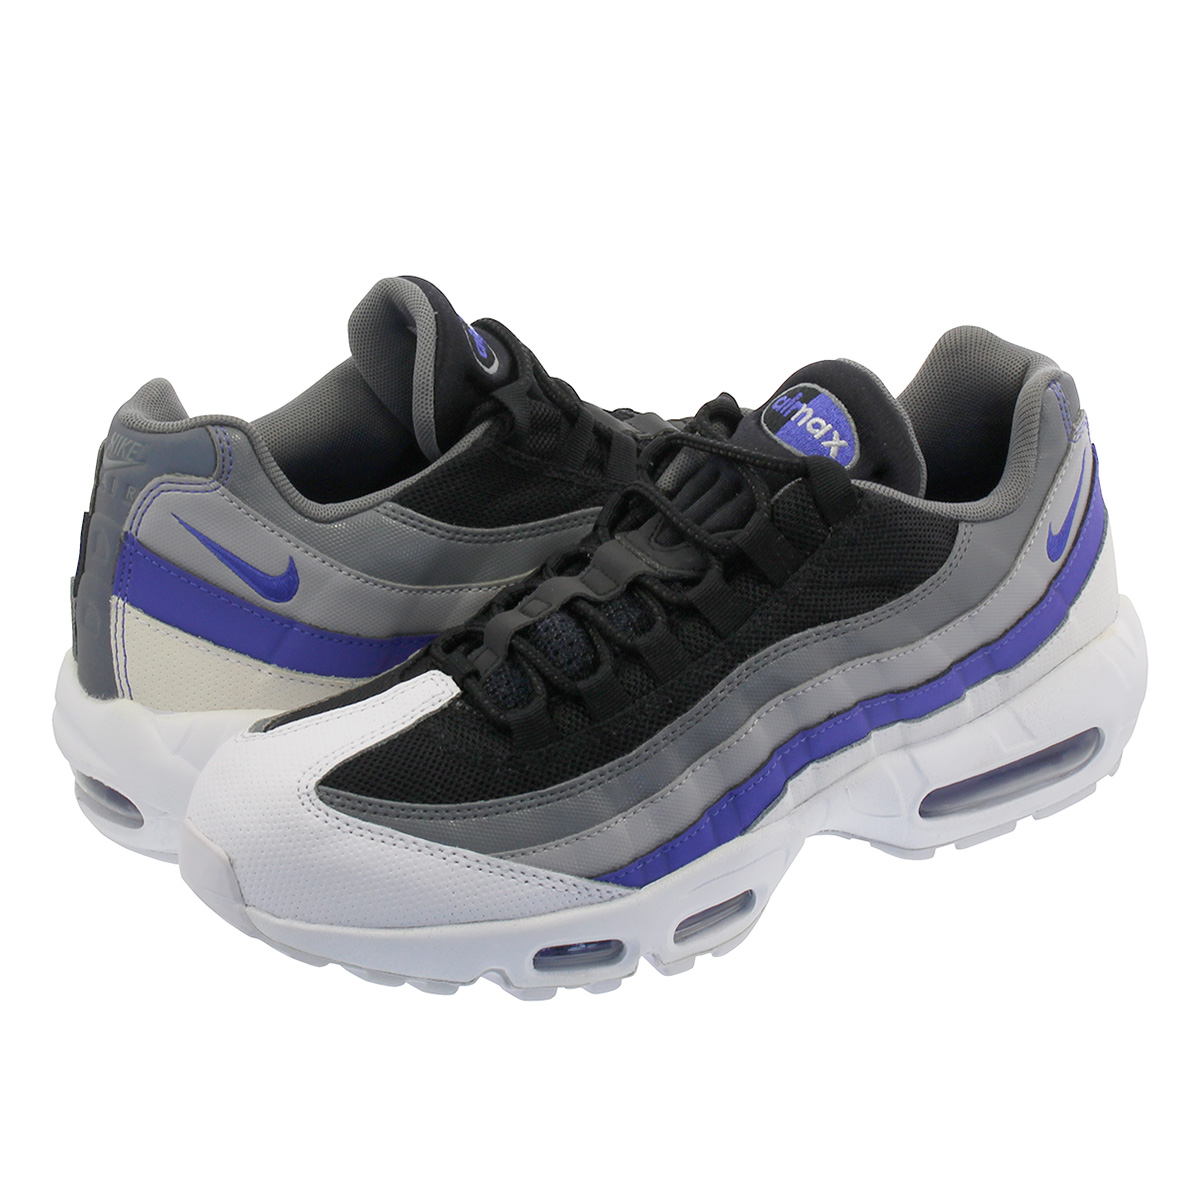 check-out 533d4 b88d3 NIKE AIR MAX 95 ESSENTIAL Kie Ney AMAX 95 essential WHITE/PERSIAN  VIOLET/COOL GREY 749,766-110